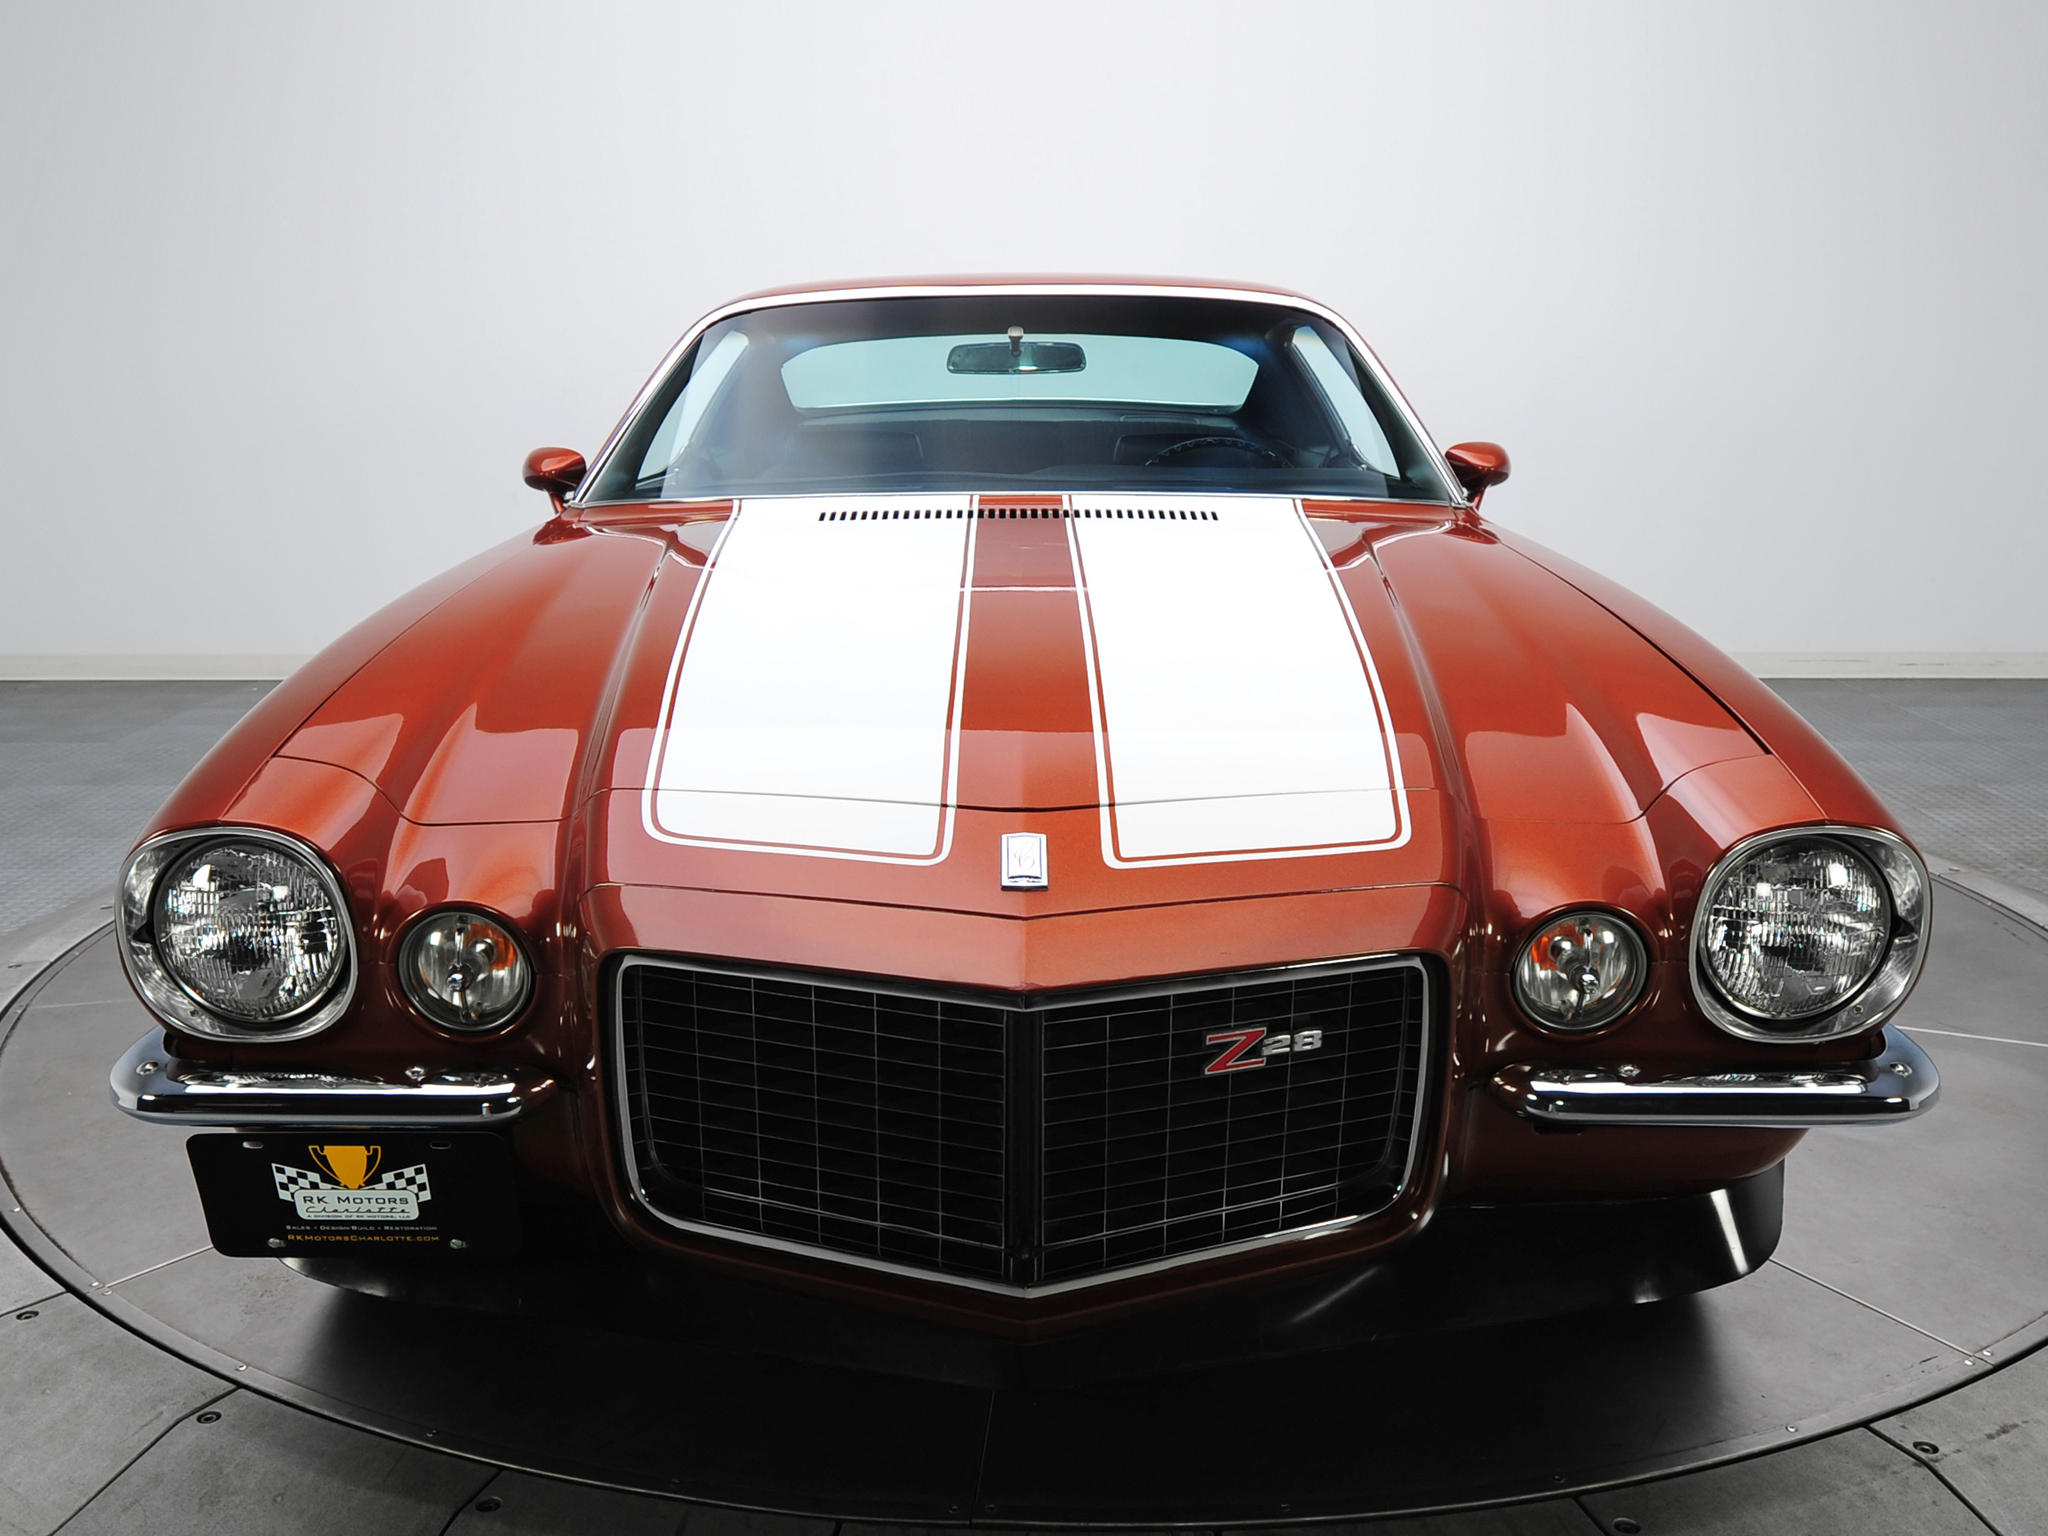 Chevrolet Wallpapers Chevrolet Camaro Z28 RS 1970 Wallpapers 2048x1536